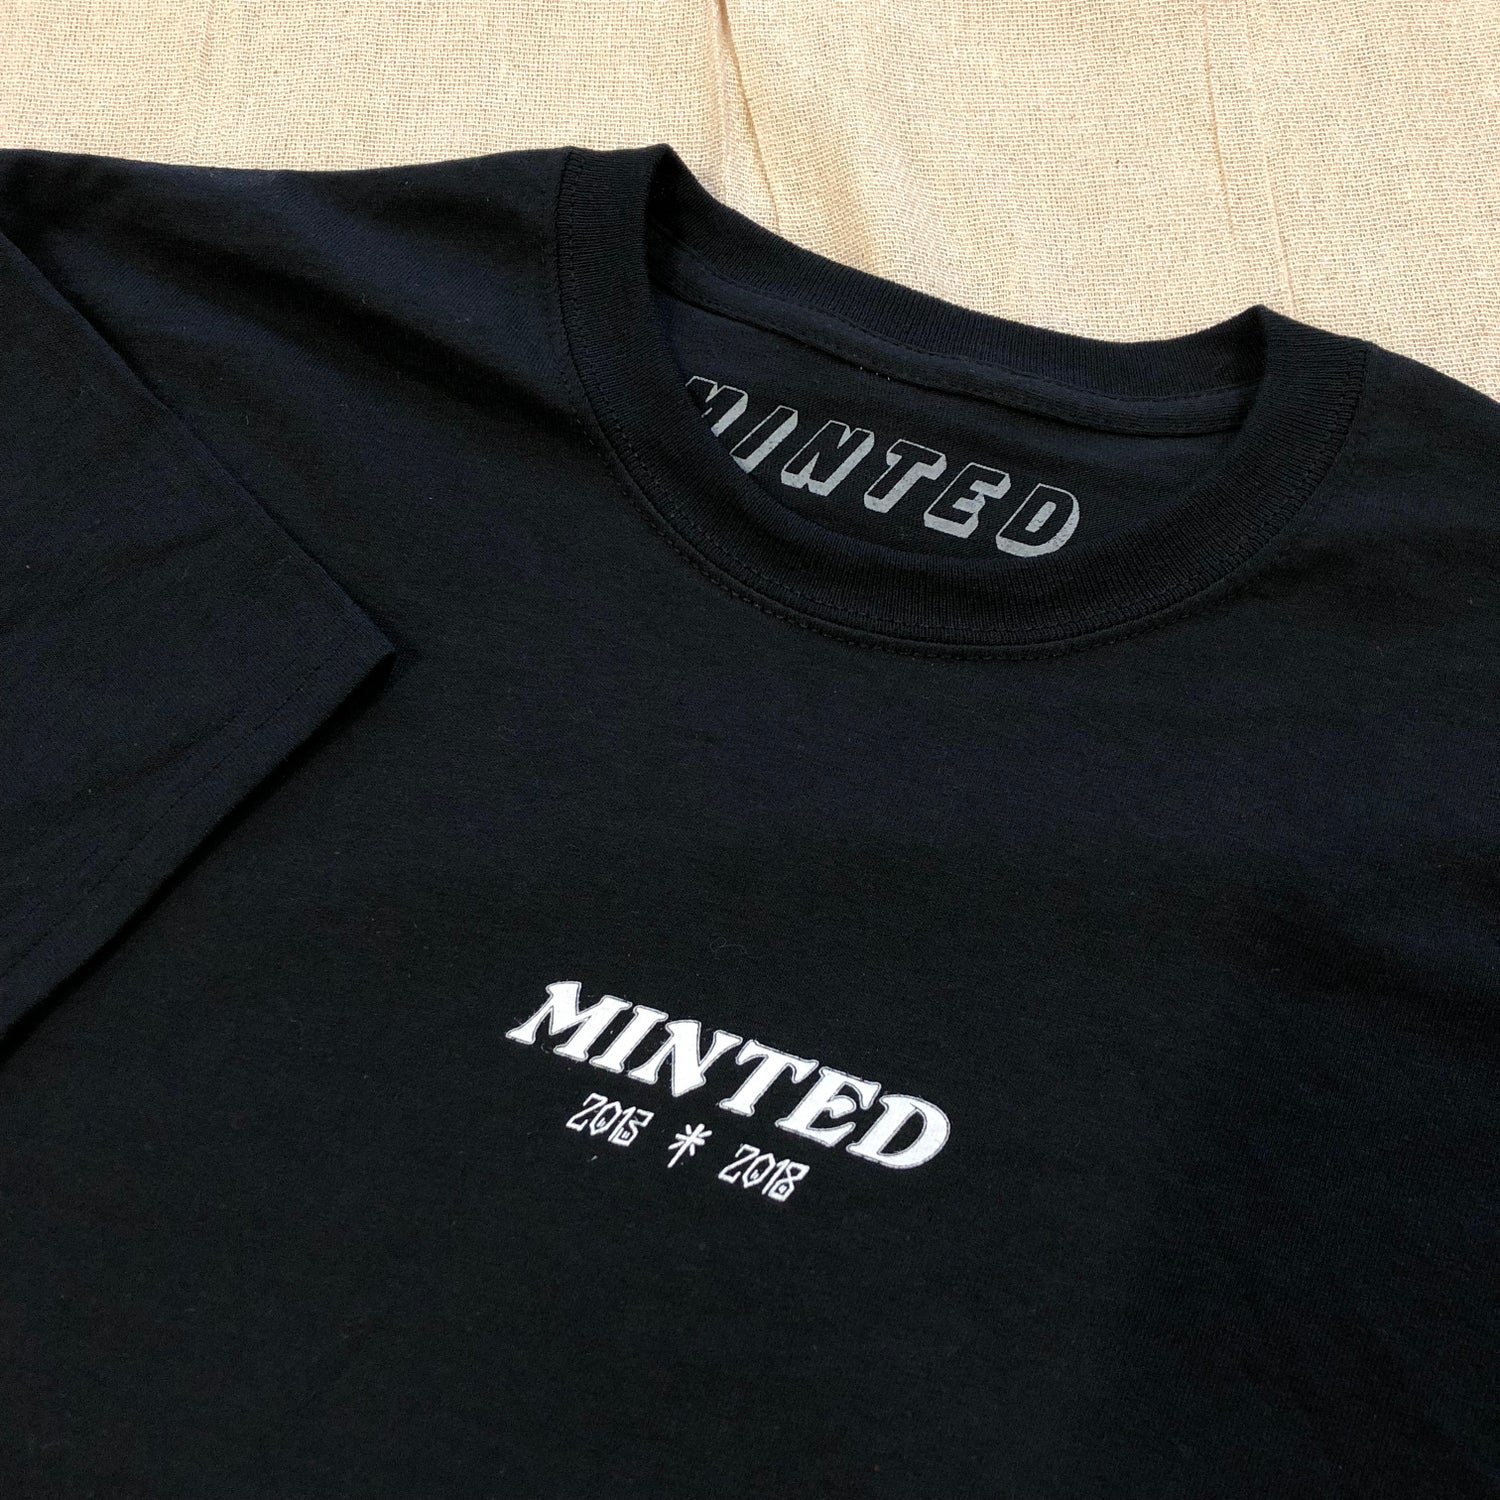 Image of Minted 5 Years Anniversary Tee